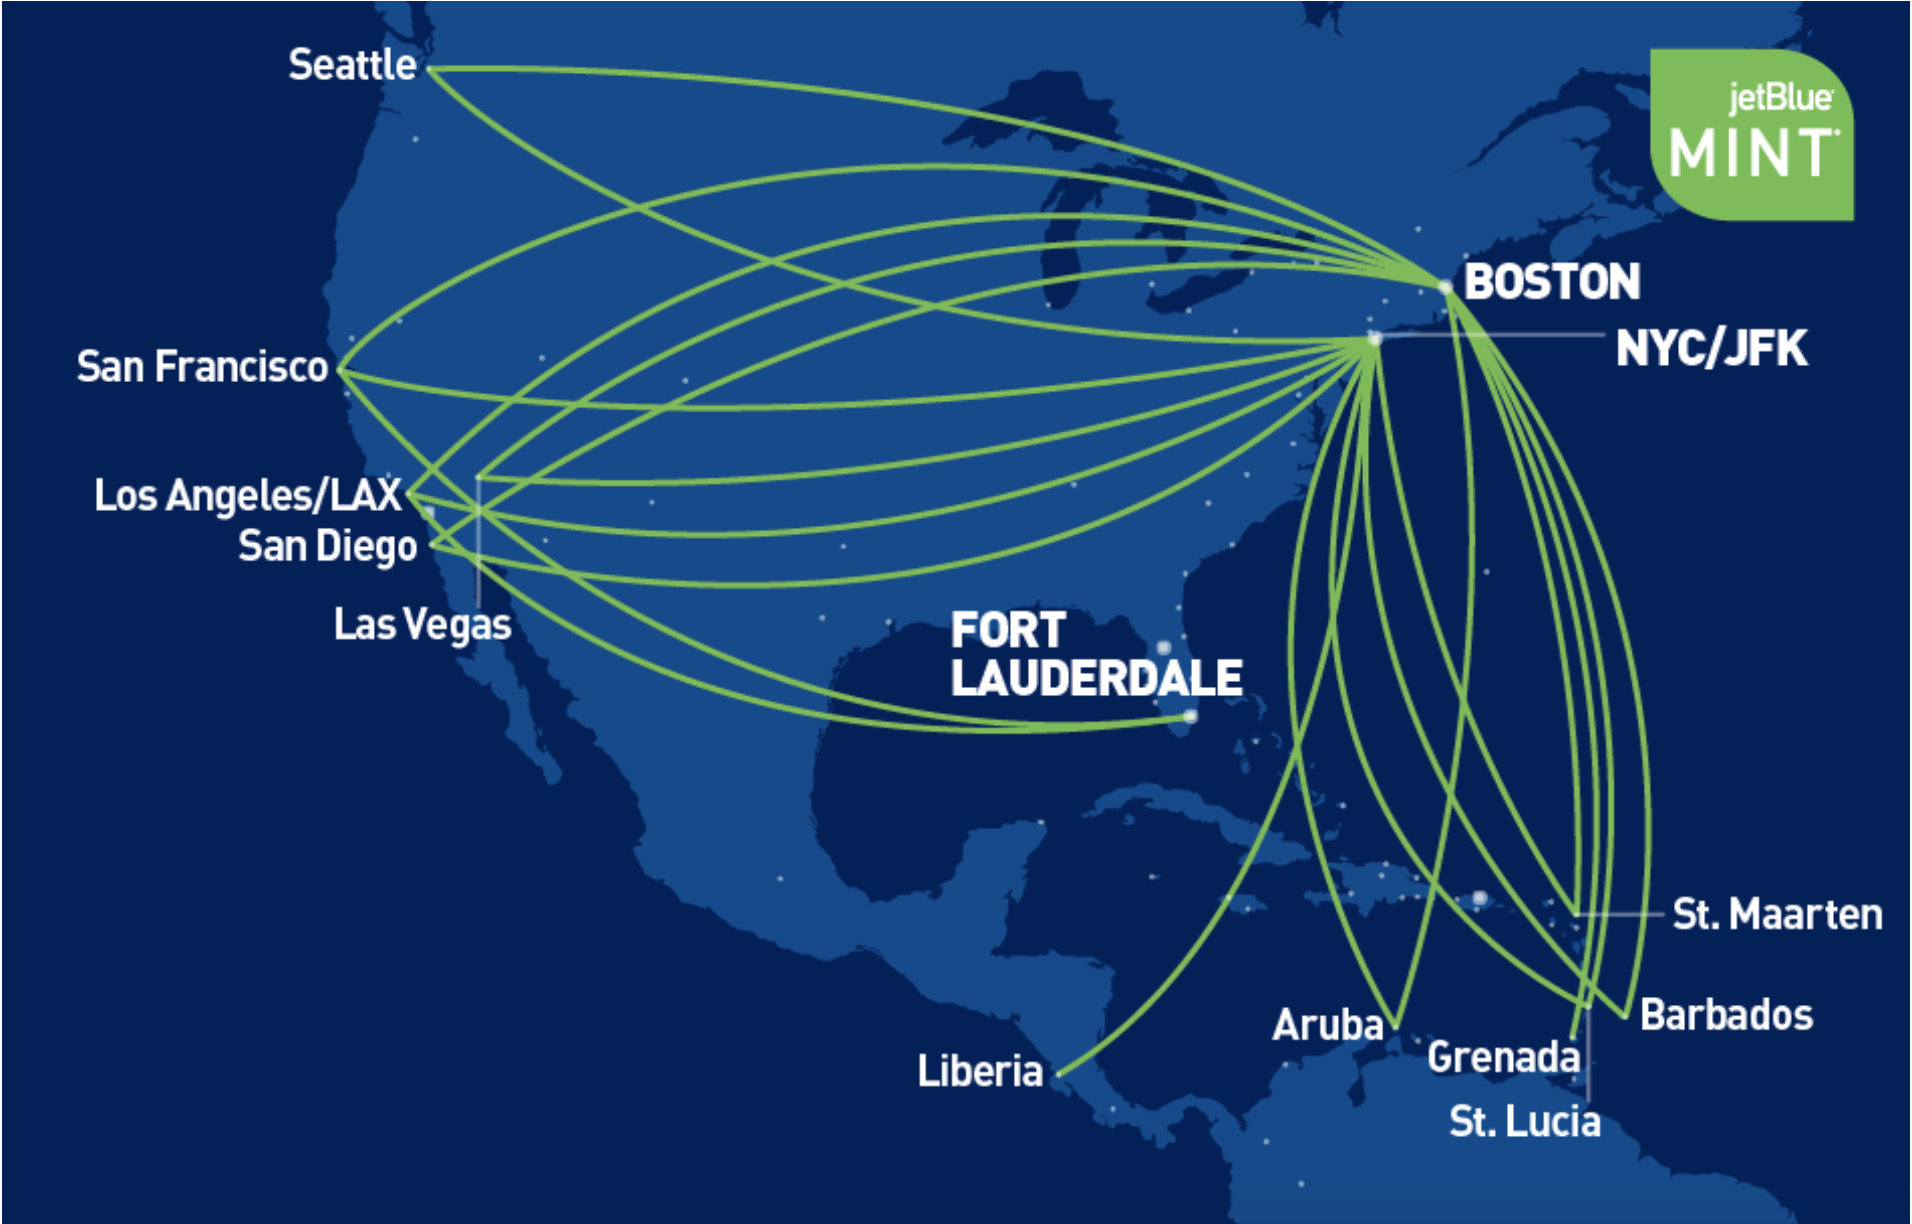 JetBlue on the Atlantic: taking on the JVs with A321LRs and Mint | CAPA